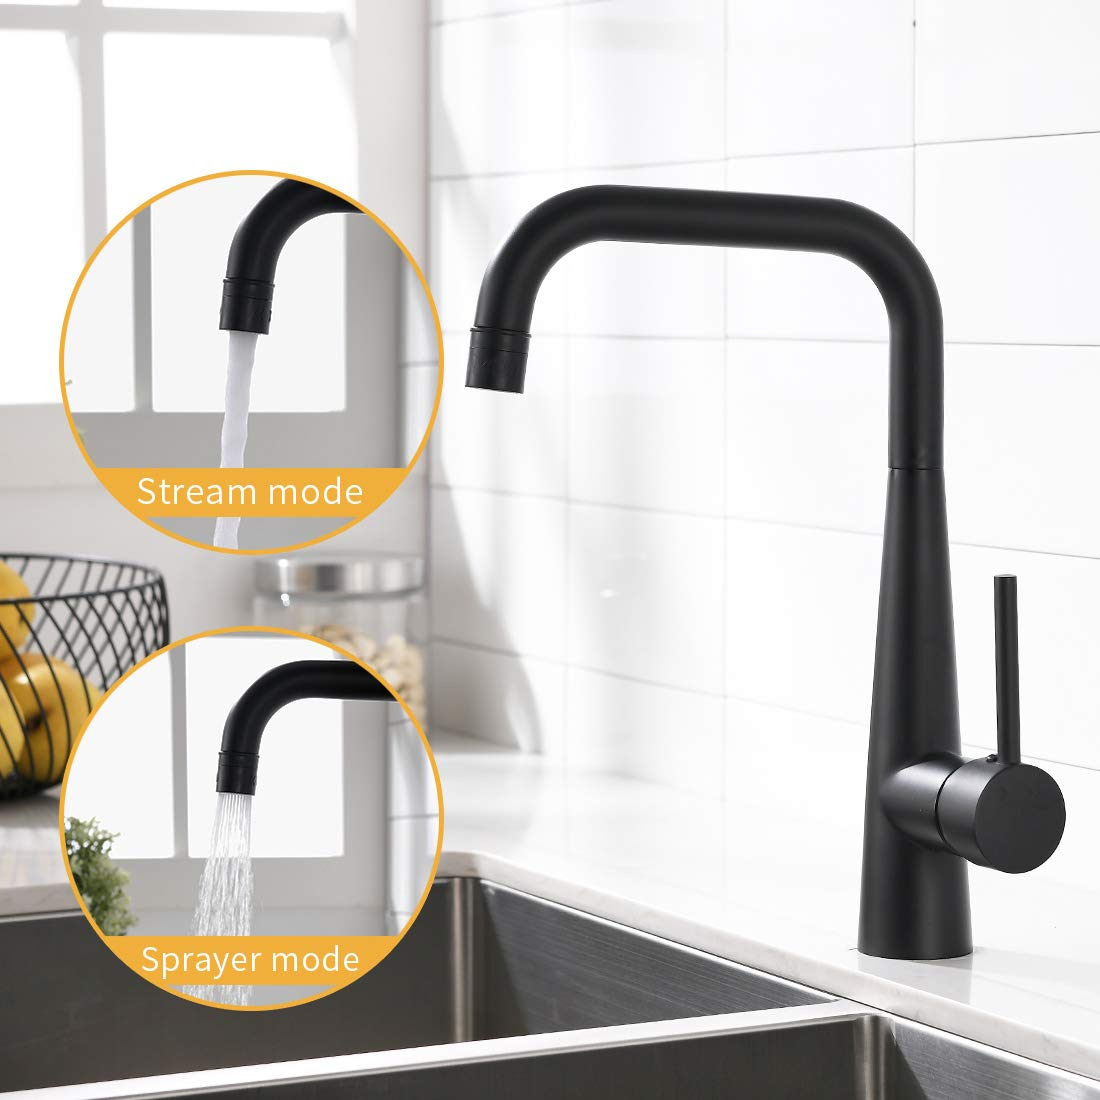 WANMAI Commercial Matte Black Kitchen Faucet, Solid Brass Body Kitchen Sink Faucet with Ceramic Valve, Single Handle Kitchen Faucets-Best Gift for Family!